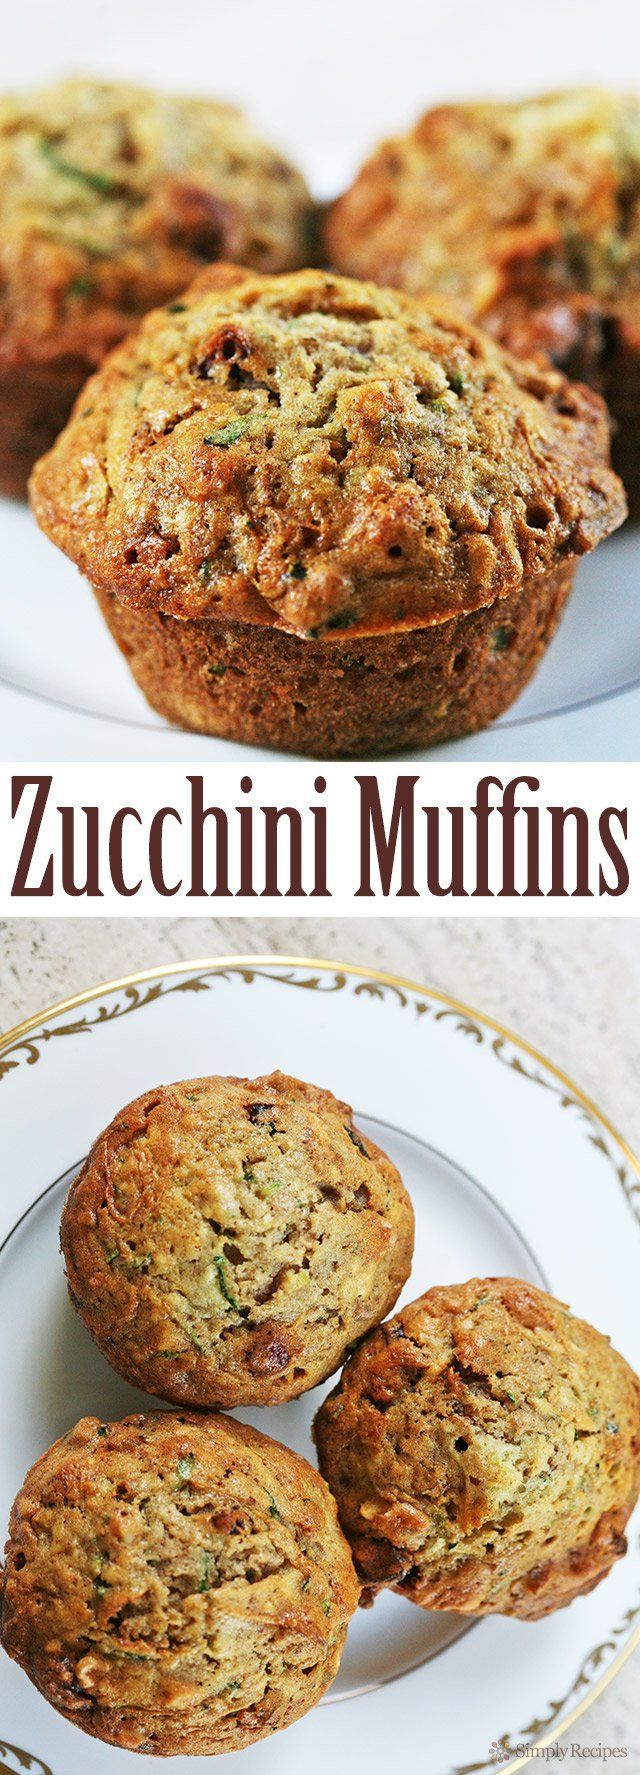 Zucchini Muffins ~ The best zucchini bread muffins ever. Moist, sweet, packed with shredded zucchini, walnuts, dried cranberries, and spiced with vanilla, cinnamon and nutmeg. ~ SimplyRecipes.com More